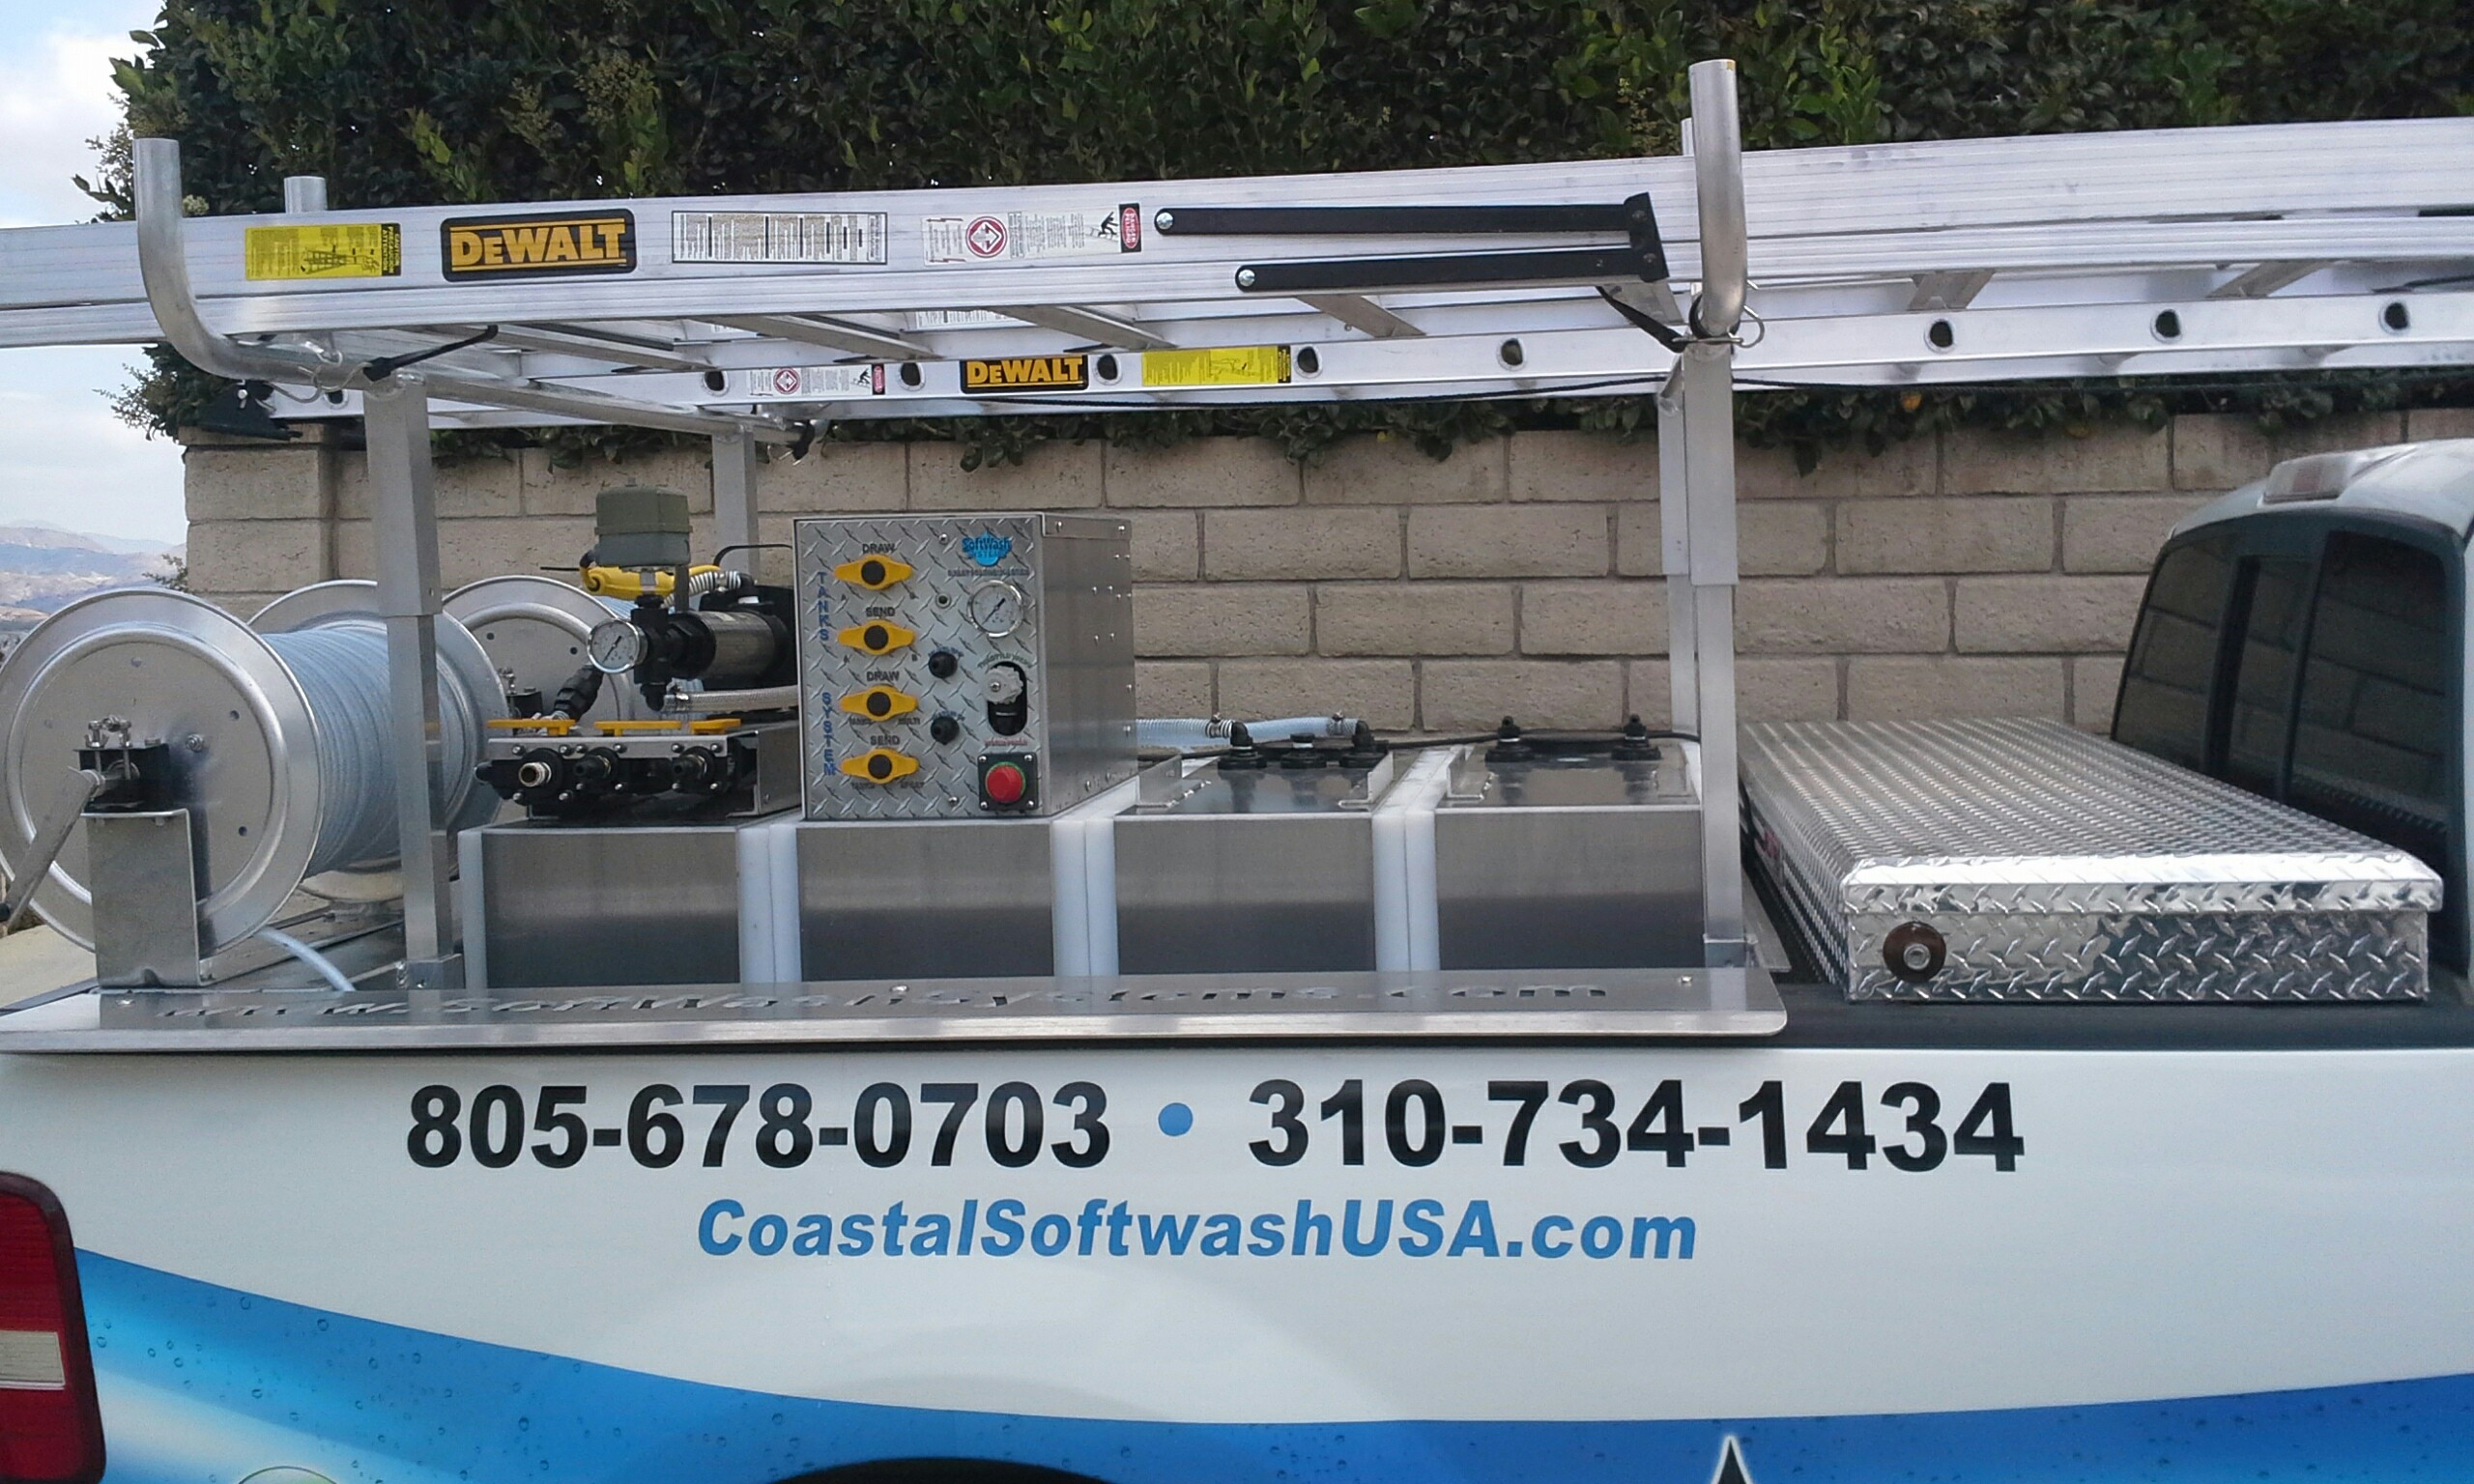 State of the art softwash, pressure wash equipment and technology